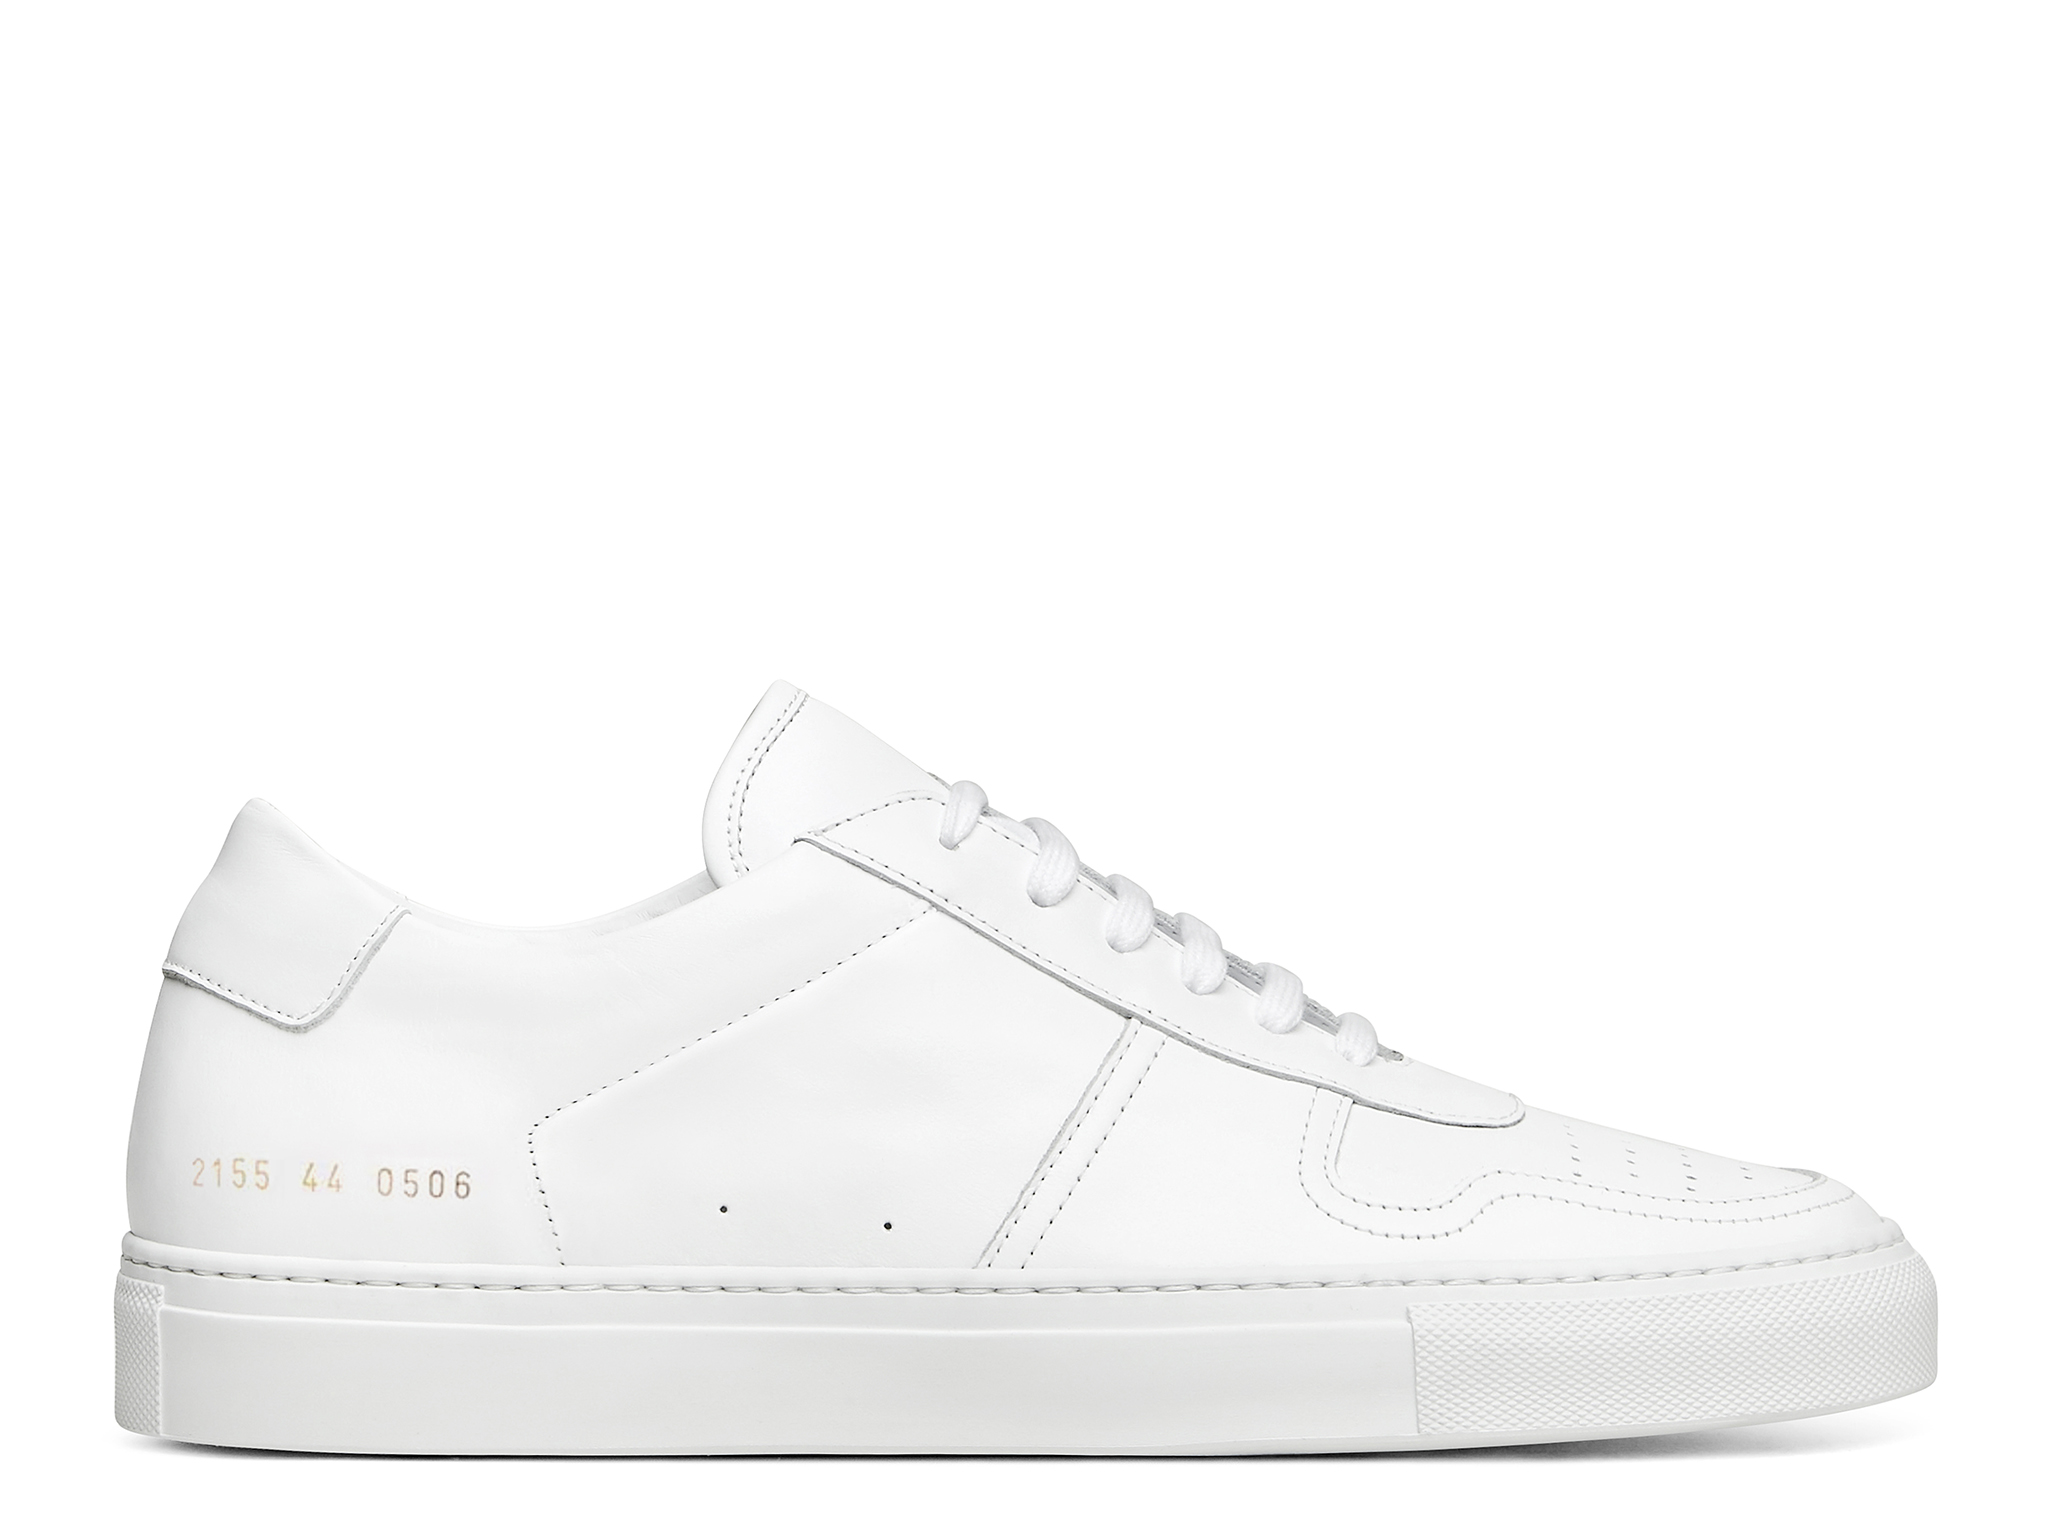 a05d2aa66100 Common Projects Mens Bball Low Leather - Sneakerboy